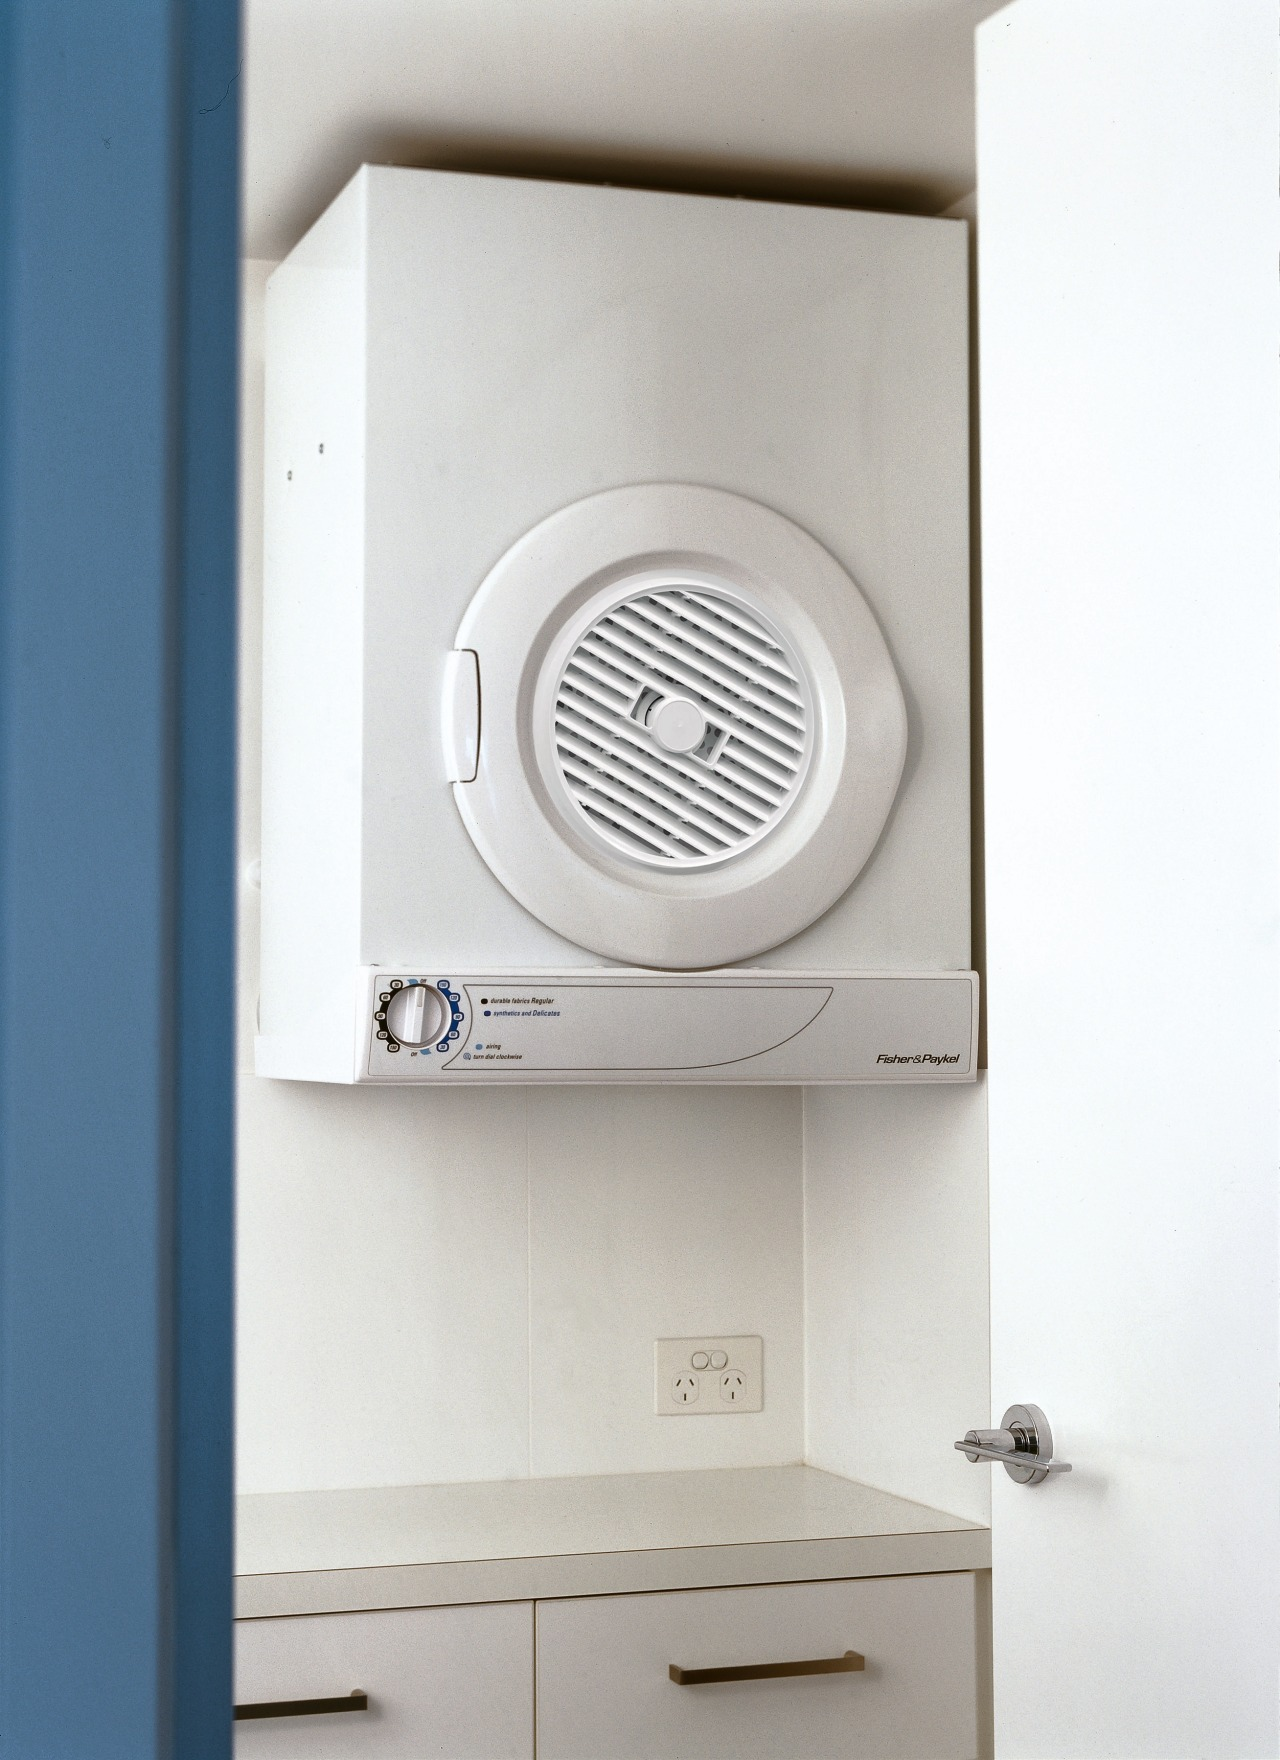 Dryer suspended on wall. home appliance, product, product design, white, gray